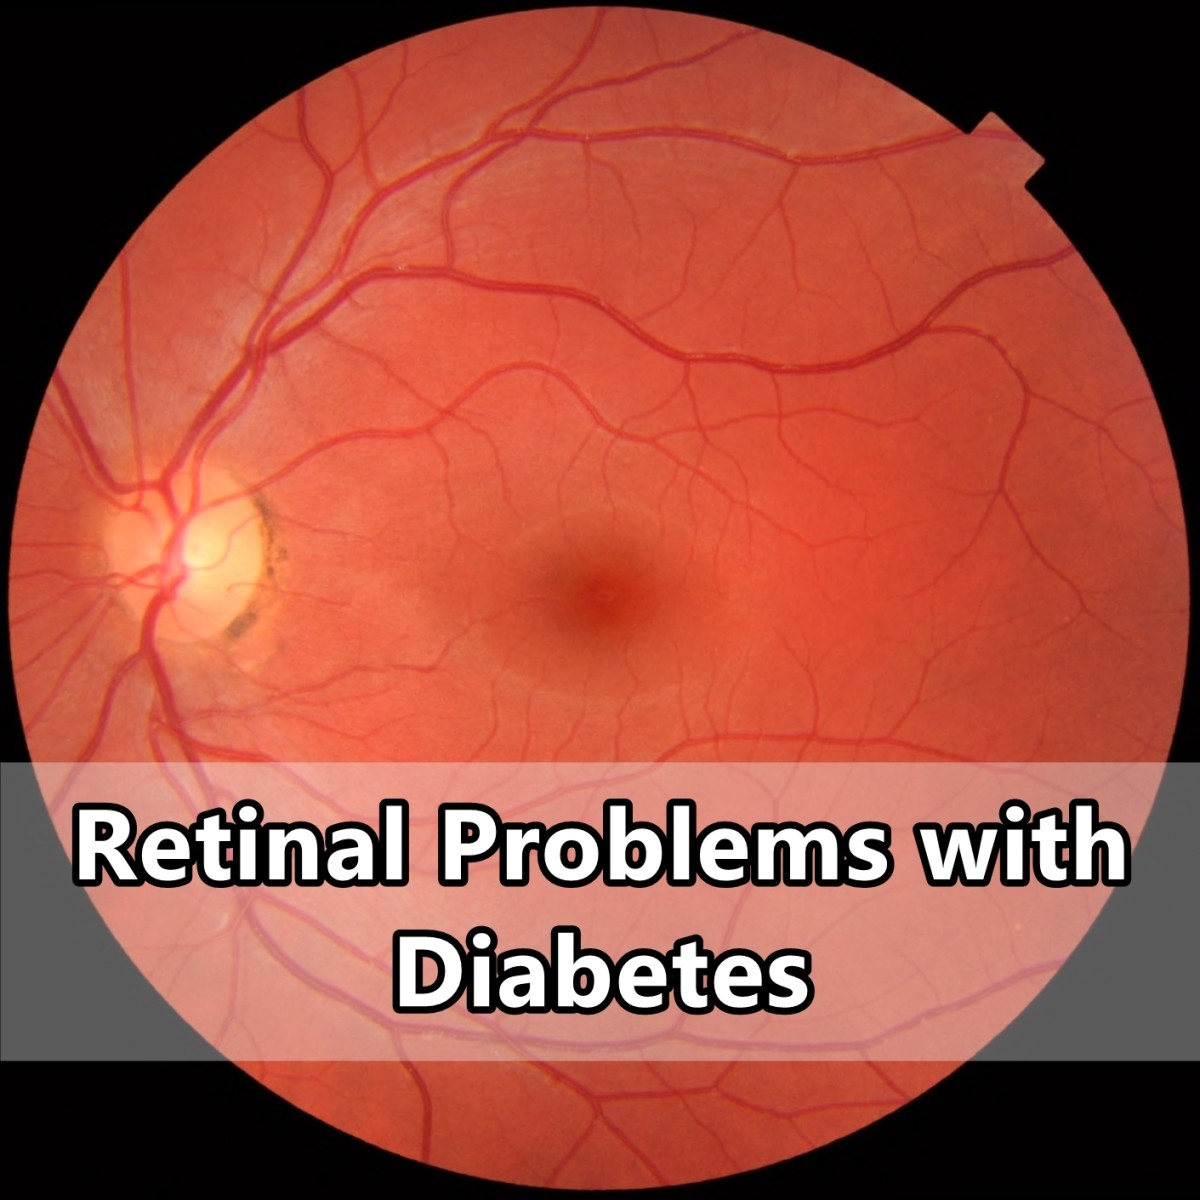 retinal-problems-with-diabetes